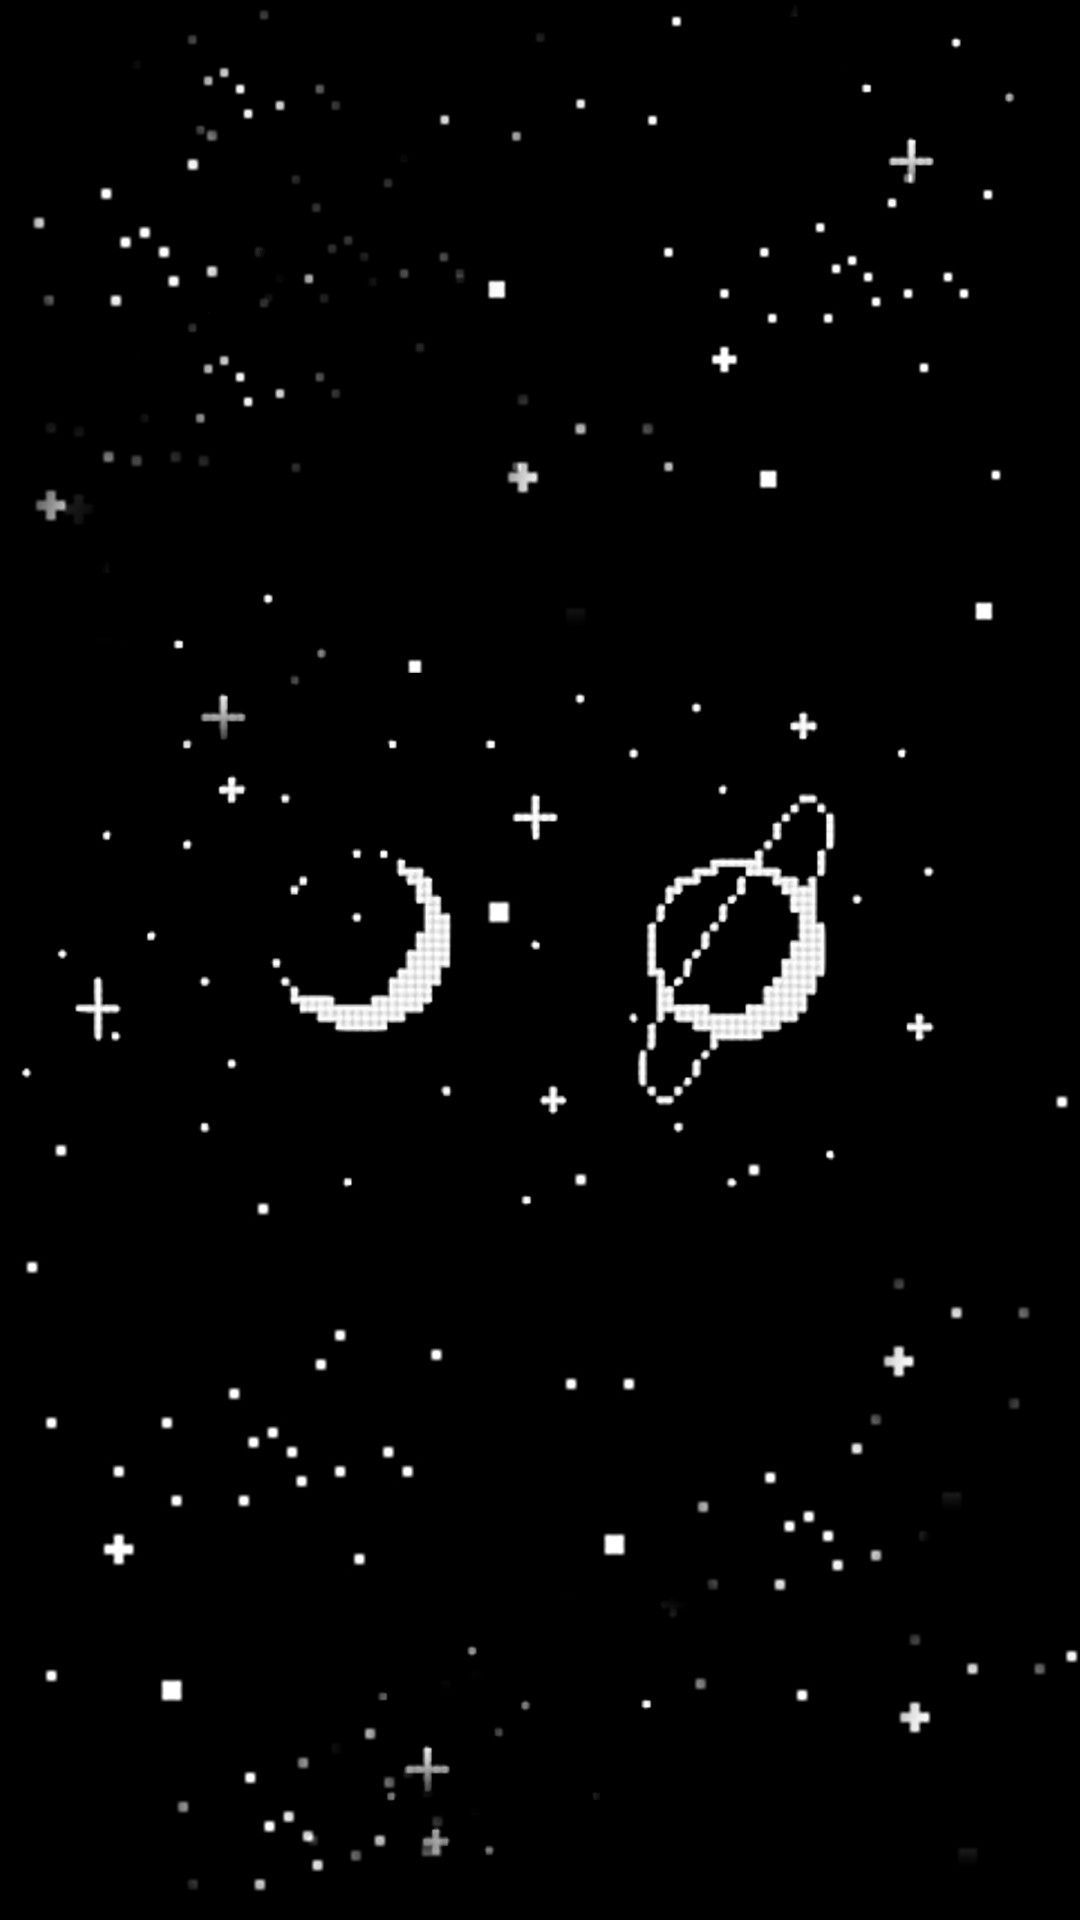 Aesthetic Black And White Space Wallpaper